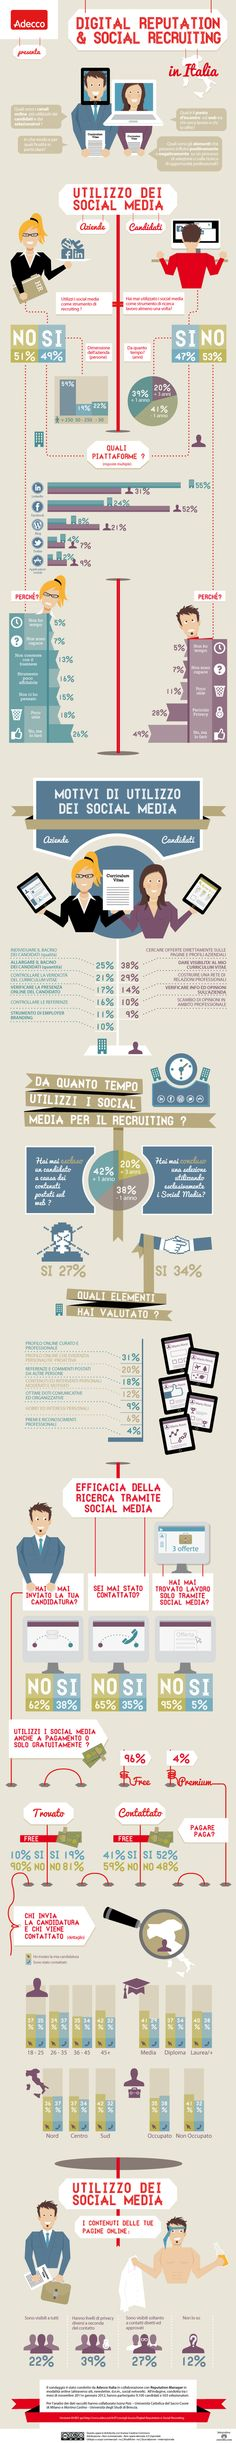 Adecco Italia infographic by Annalisa Puracchio, via Behance